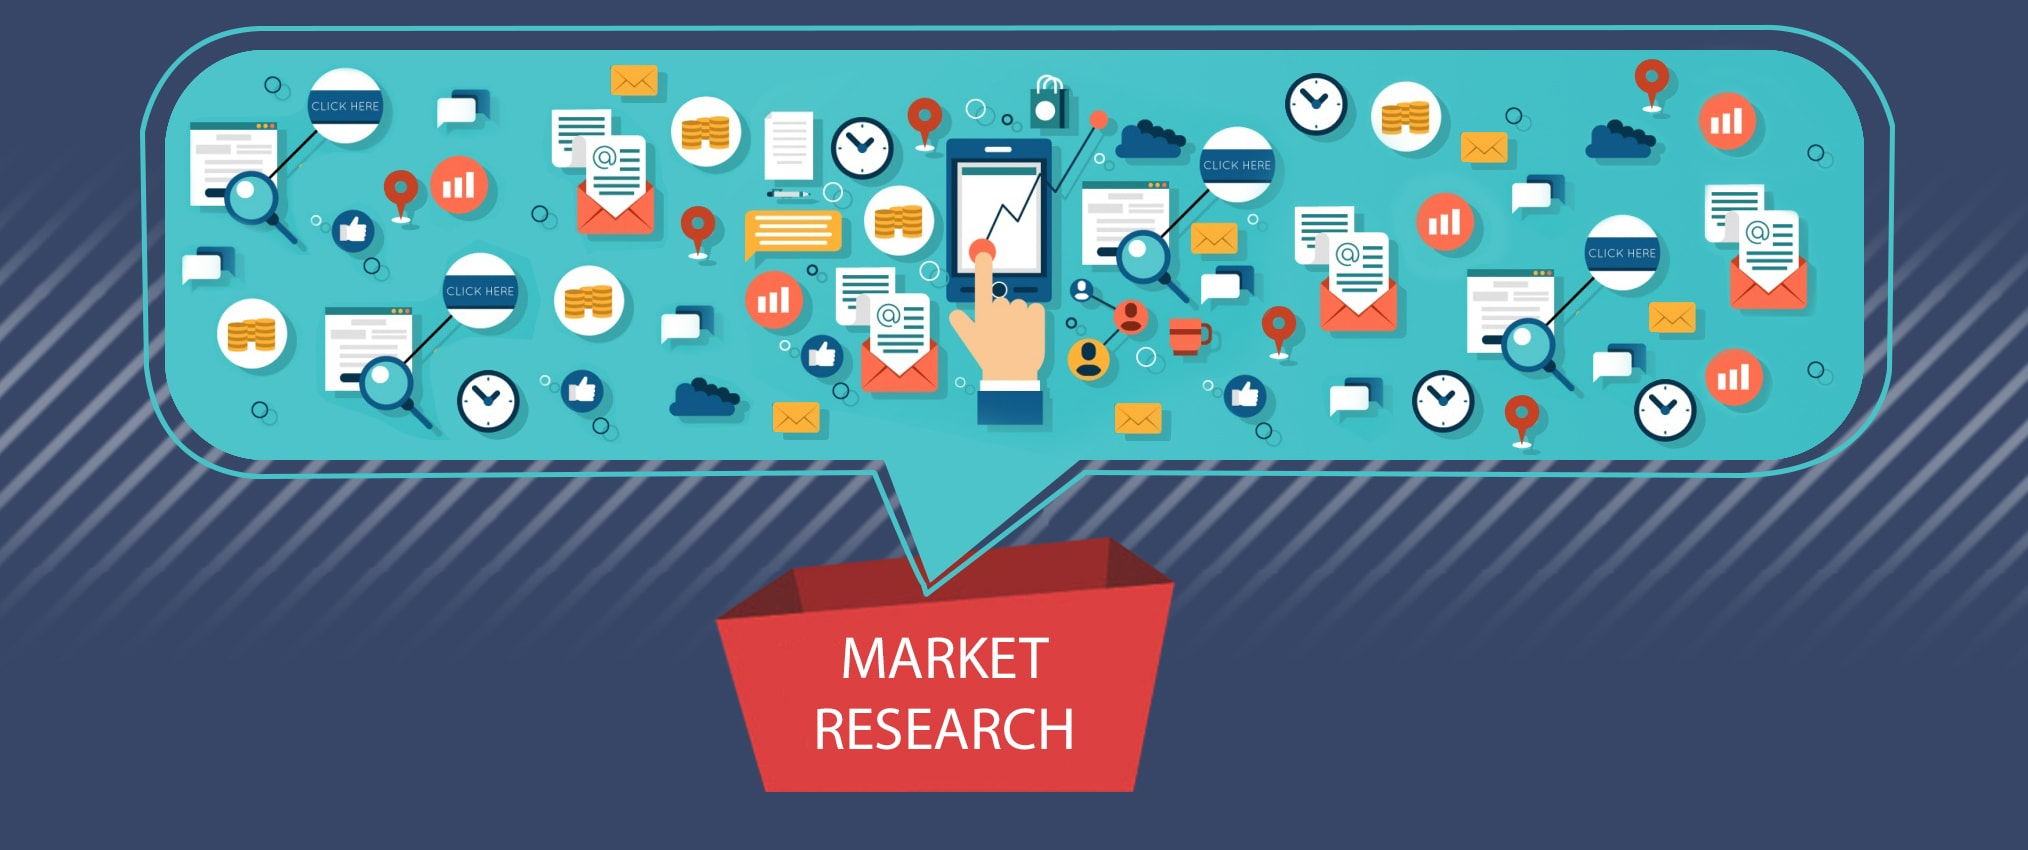 importance of market research to business Market research is the process of gathering and analyzing information about customer groups, competitors, your industry and the general business environment.